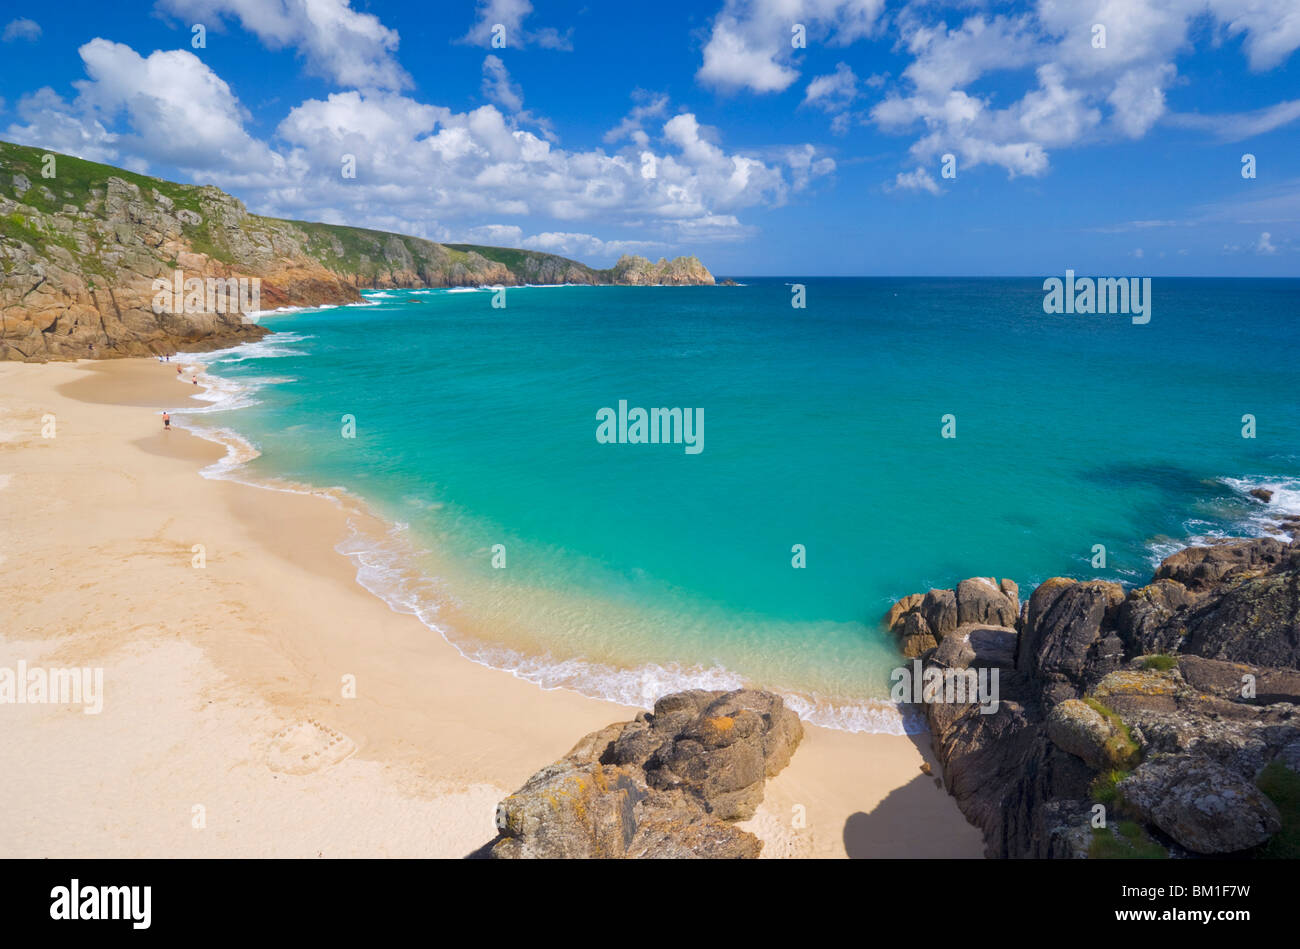 Porthcurno beach, Cornwall, England, United Kingdom, Europe - Stock Image